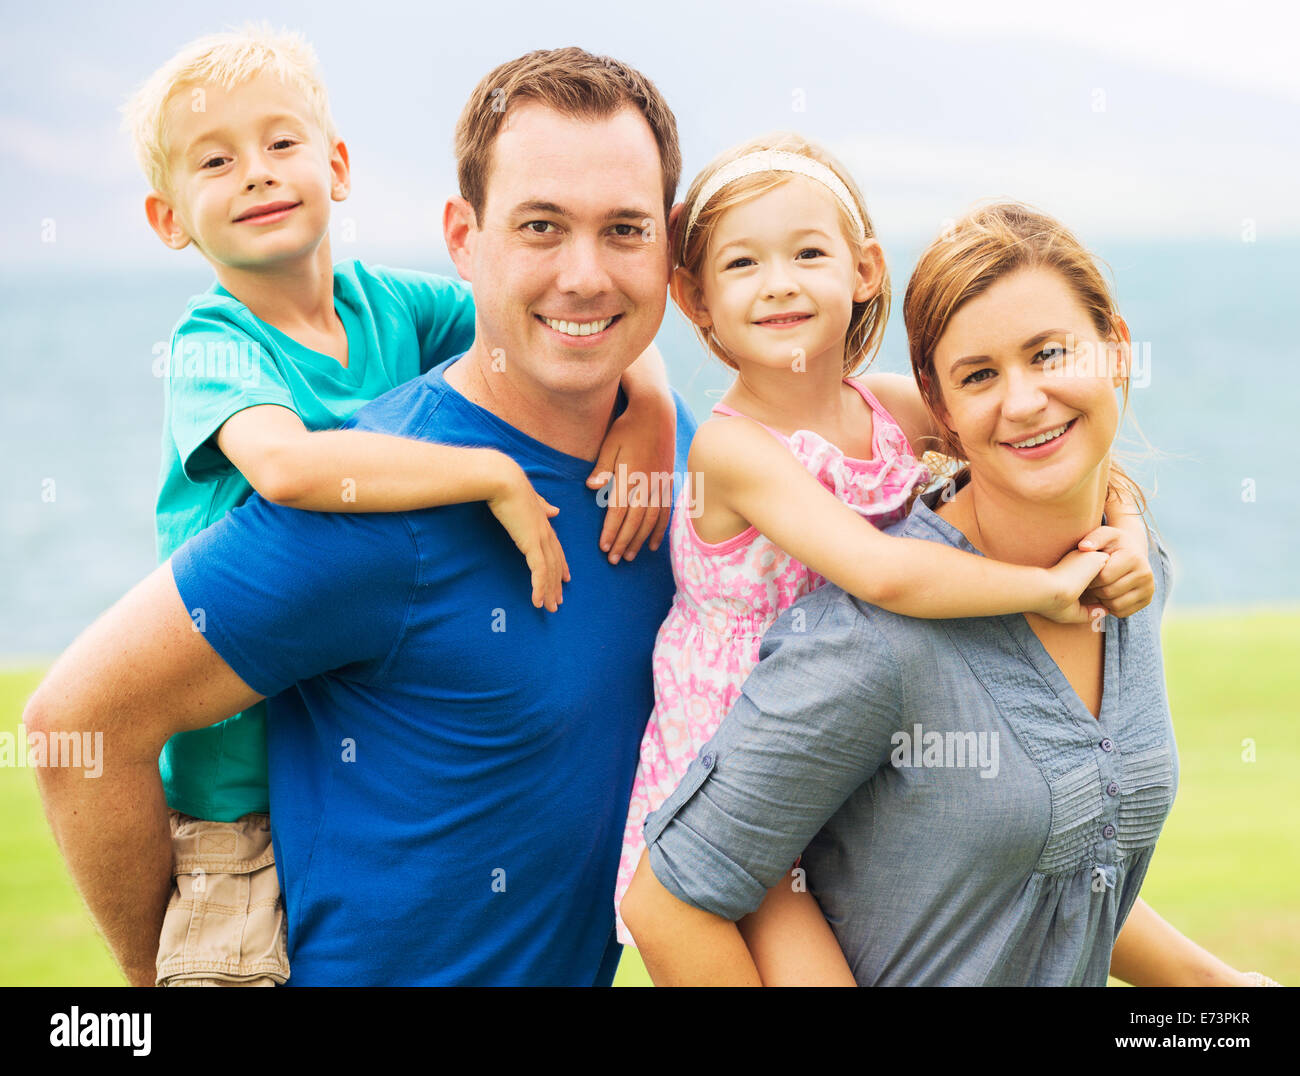 Portrait of Happy Family Outside - Stock Image